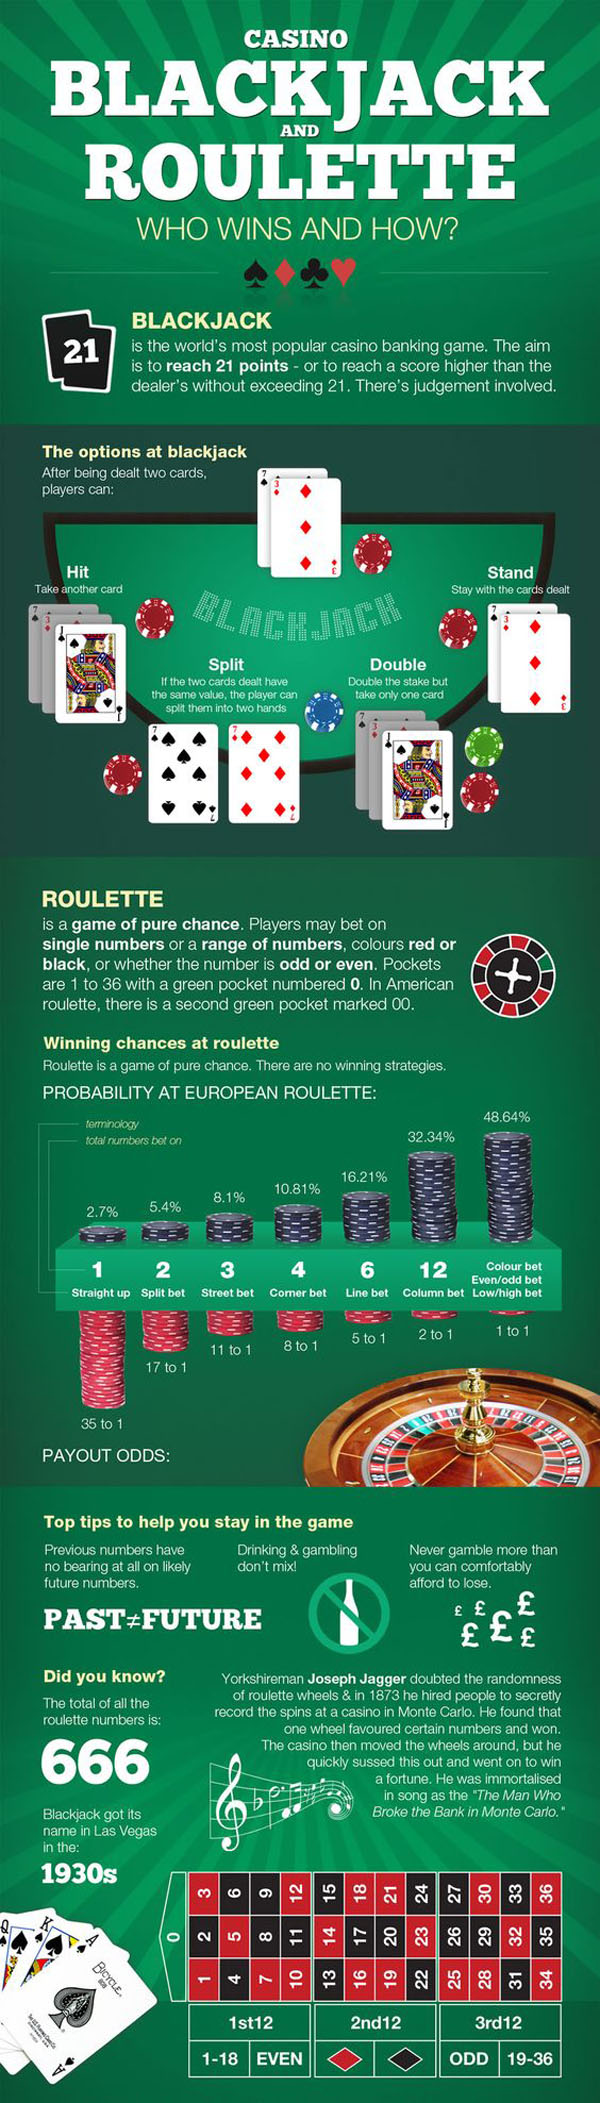 Blackjack and Roulette Who Wins and How? - Infographic